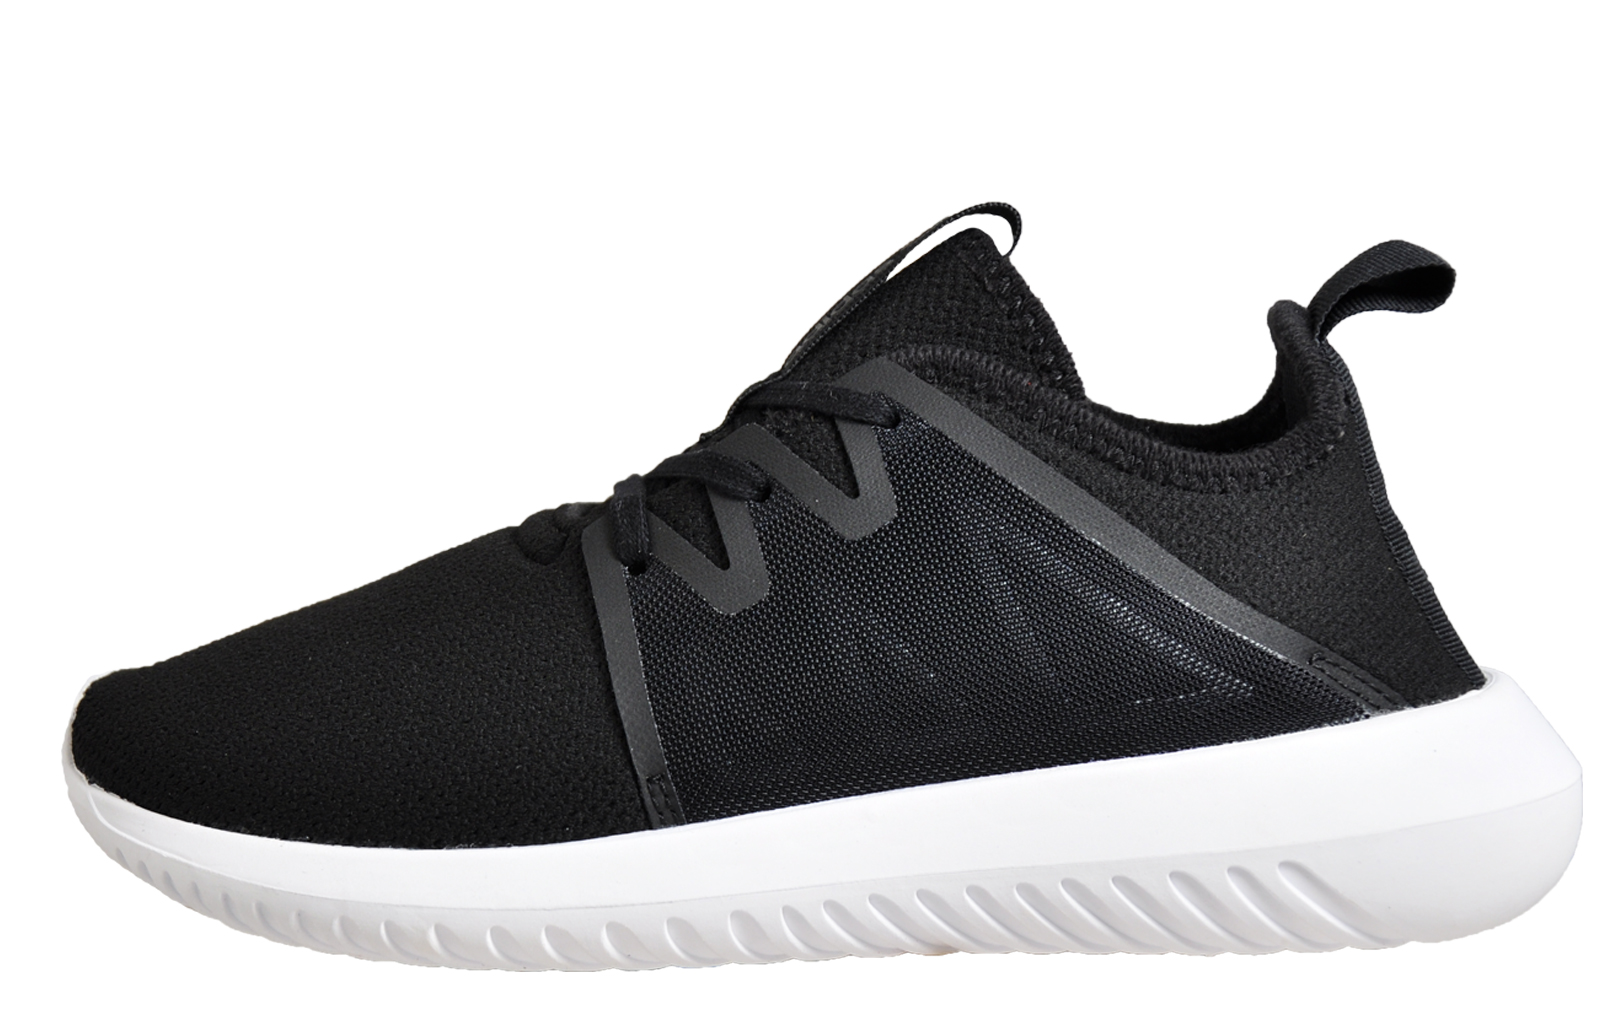 new style 2c4b3 3aa76 Adidas Originals Tubular Viral 2 Women s Ladies Running Shoes Gym Trainers  Black